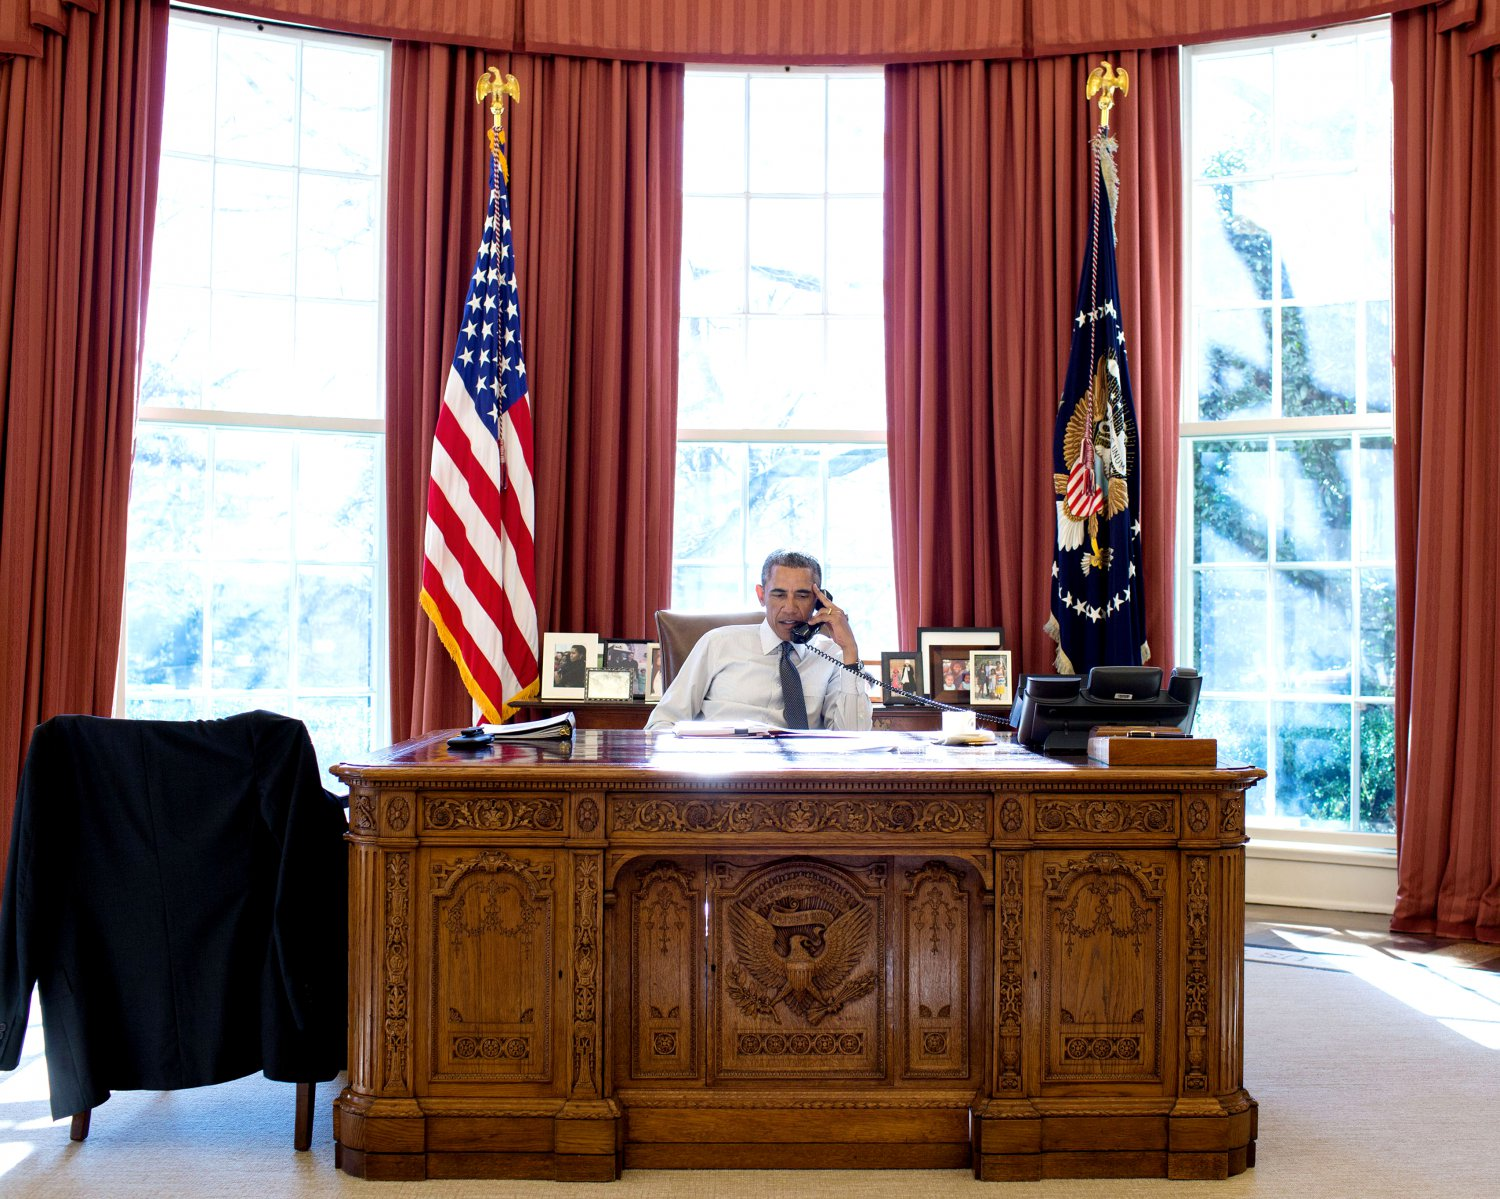 BARACK OBAMA ON A CALL IN THE OVAL OFFICE JANUARY 5, 2015 - 8X10 PHOTO (ZY-394)